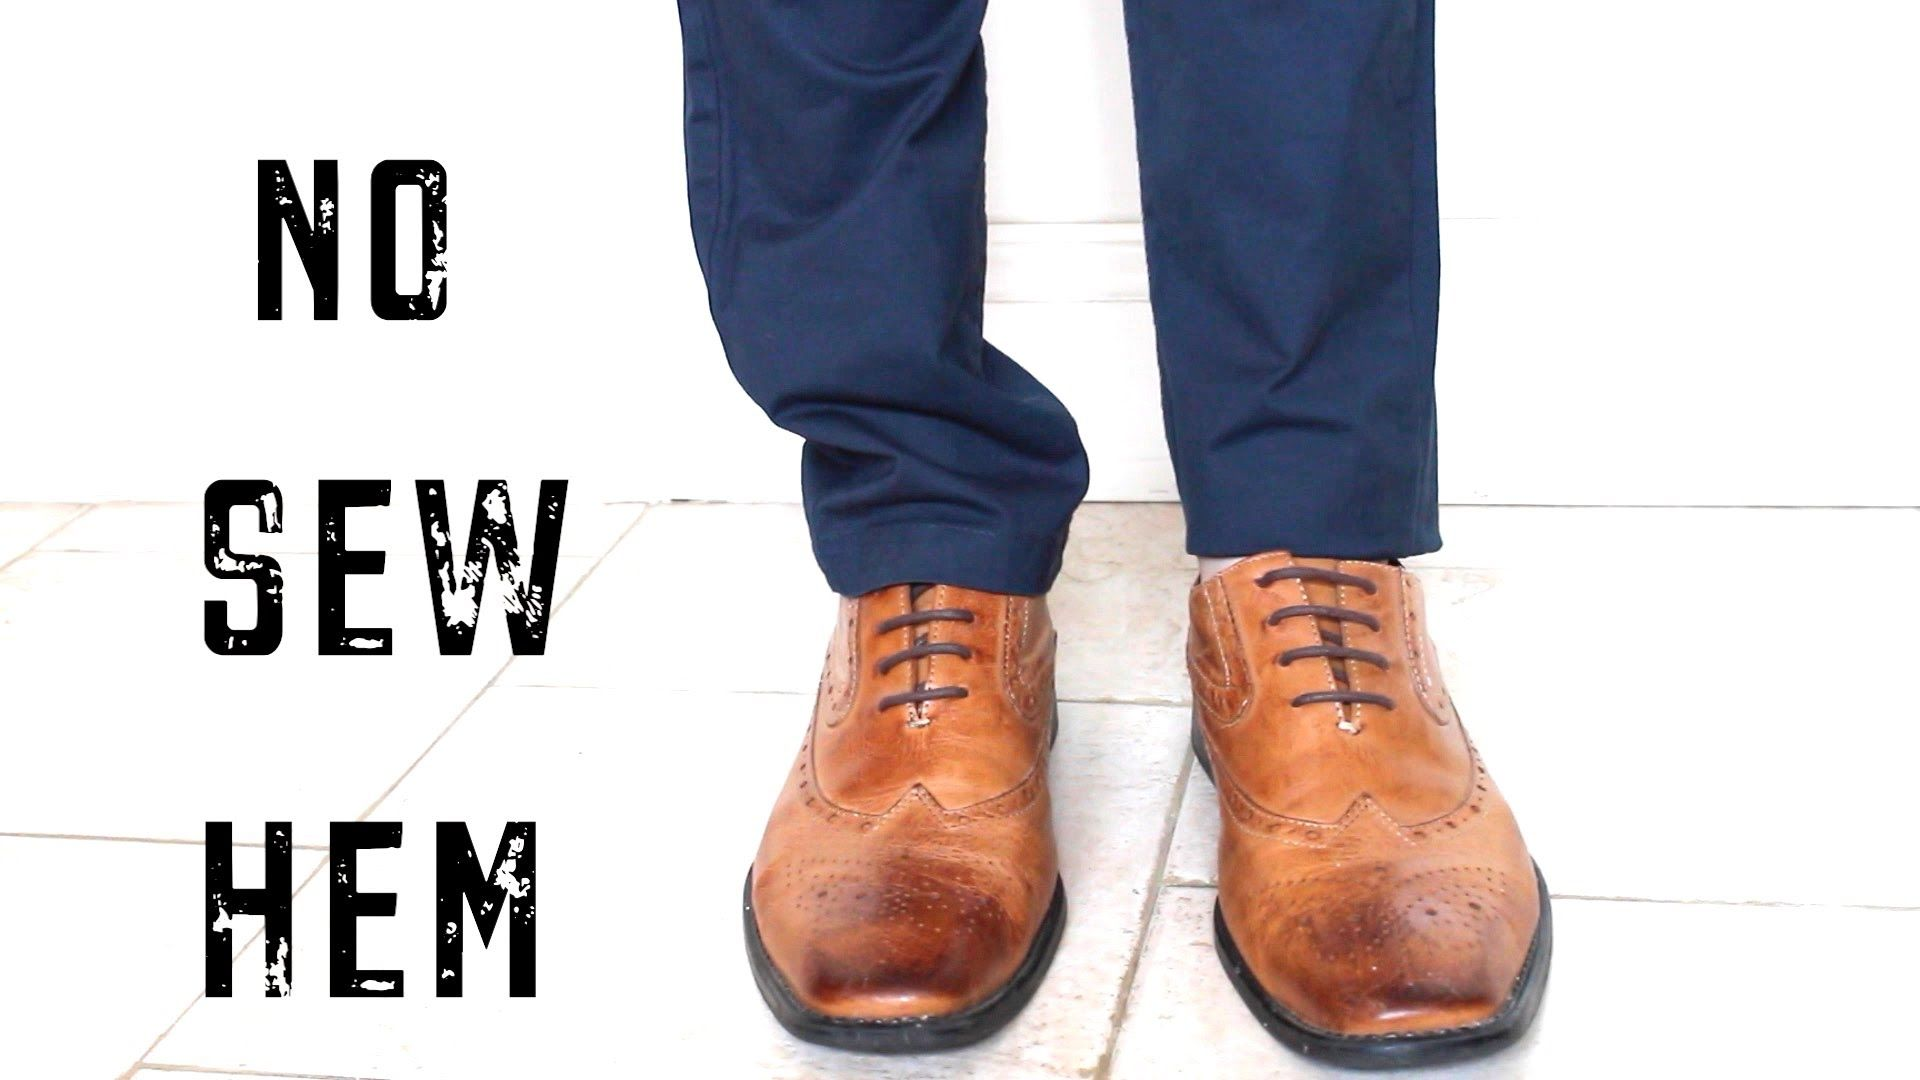 HOW TO EASILY HEM PANTS FAST NO SEW LIFE HACK Cheap